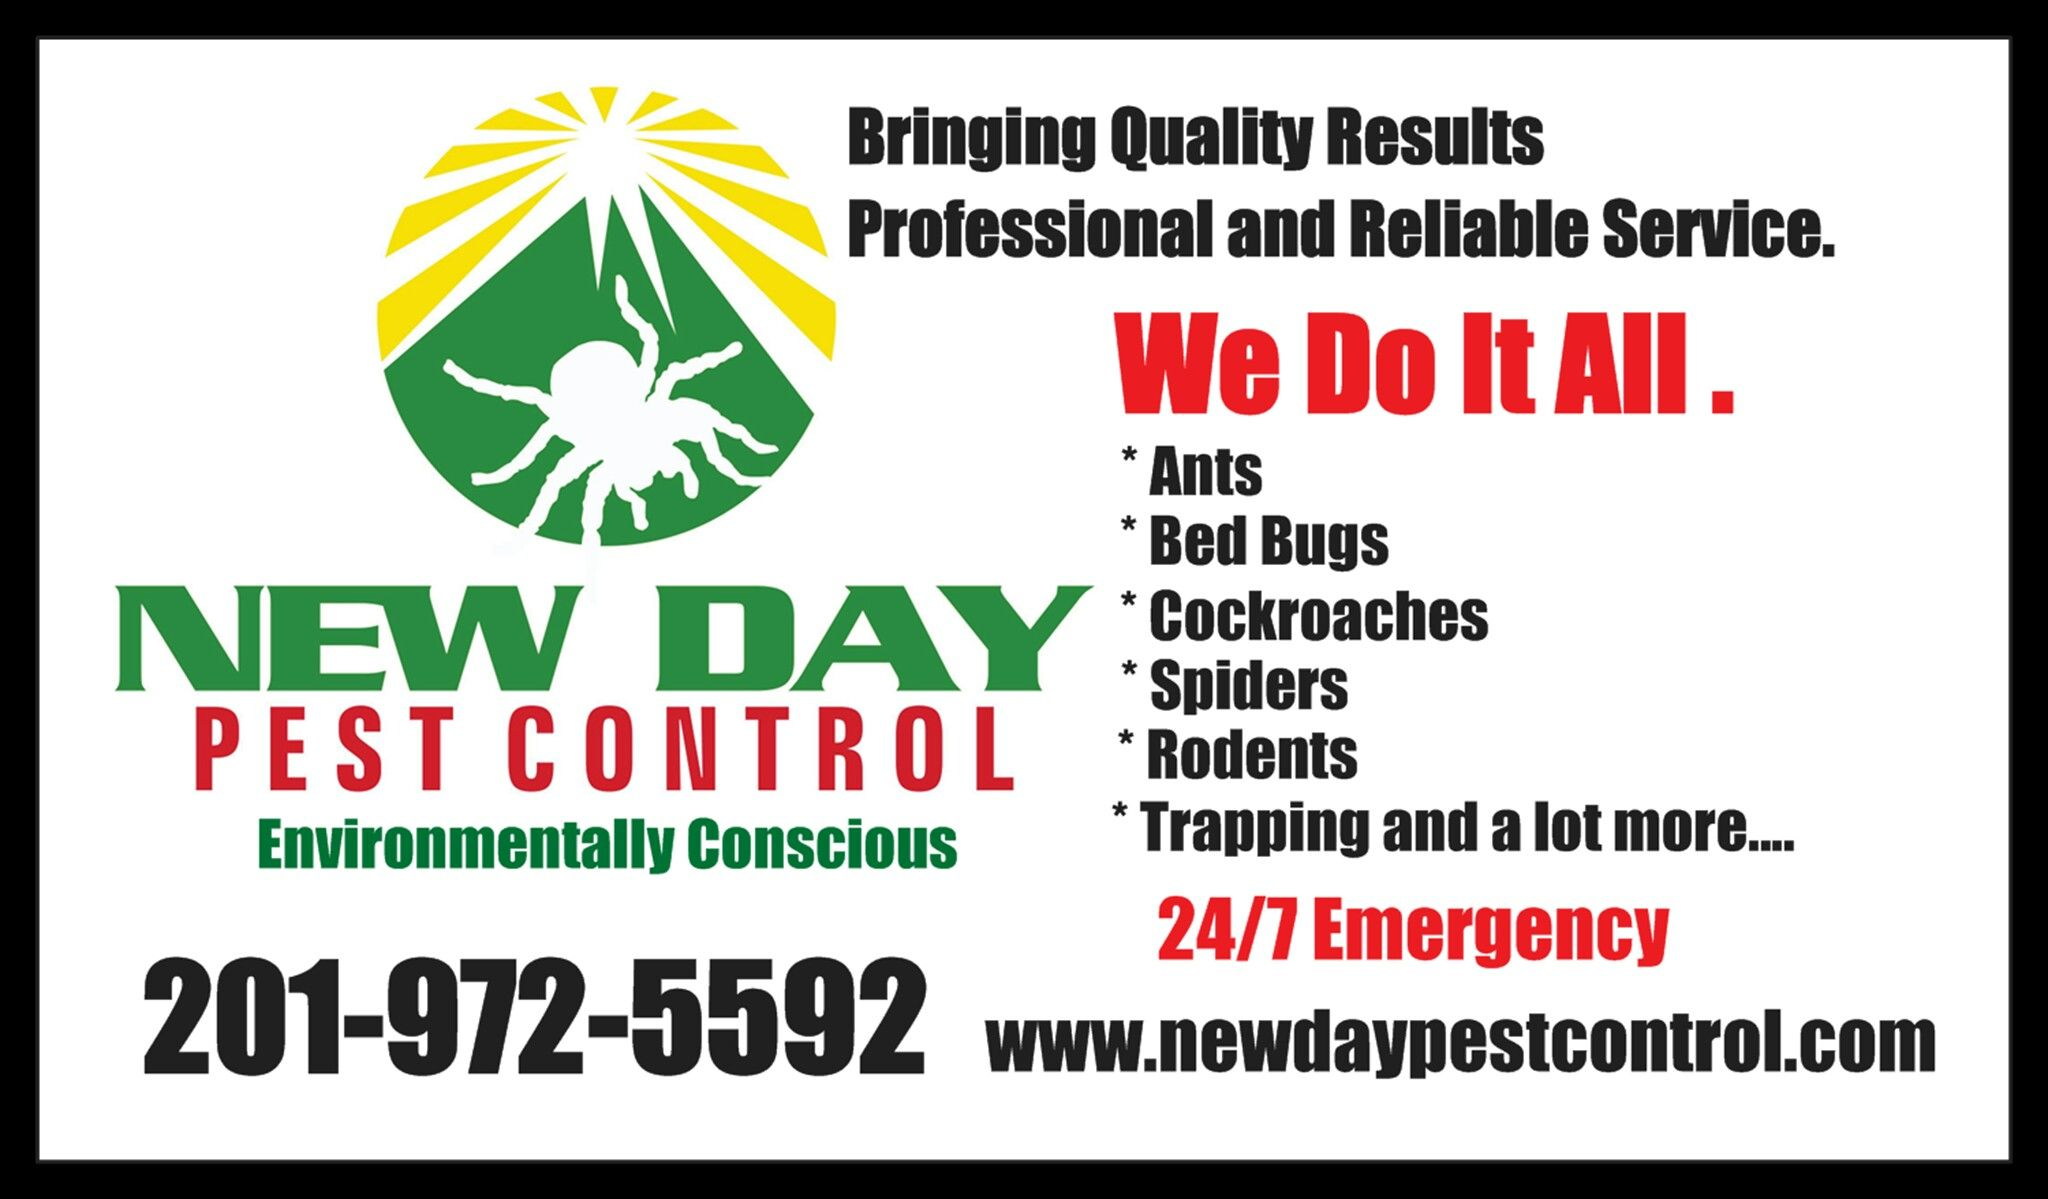 new day pest control business card call now 201 972 5592